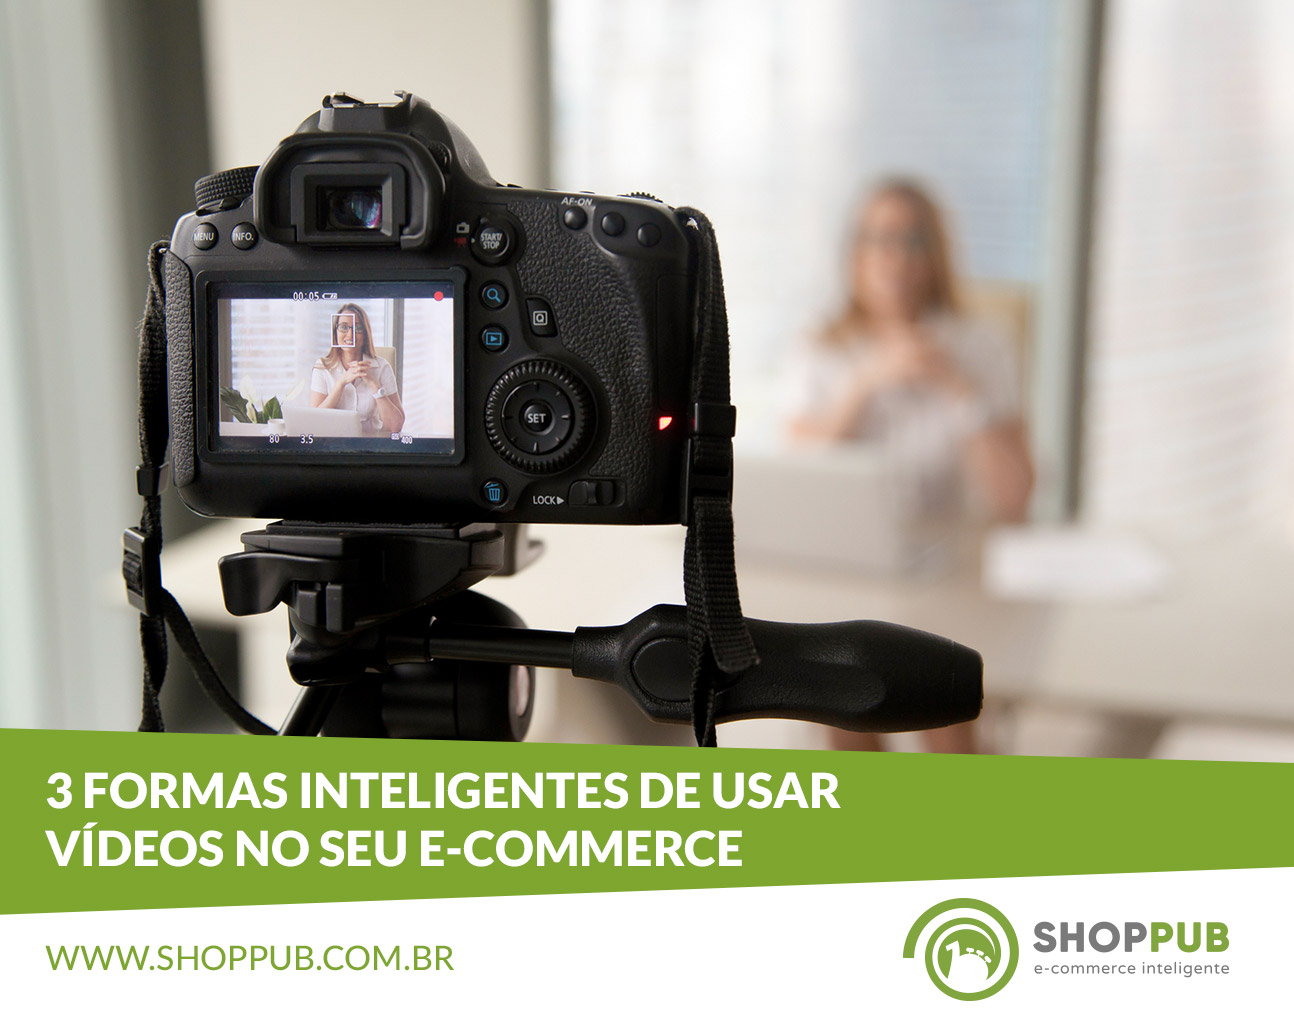 3 formas inteligentes de usar vídeos no seu e-commerce